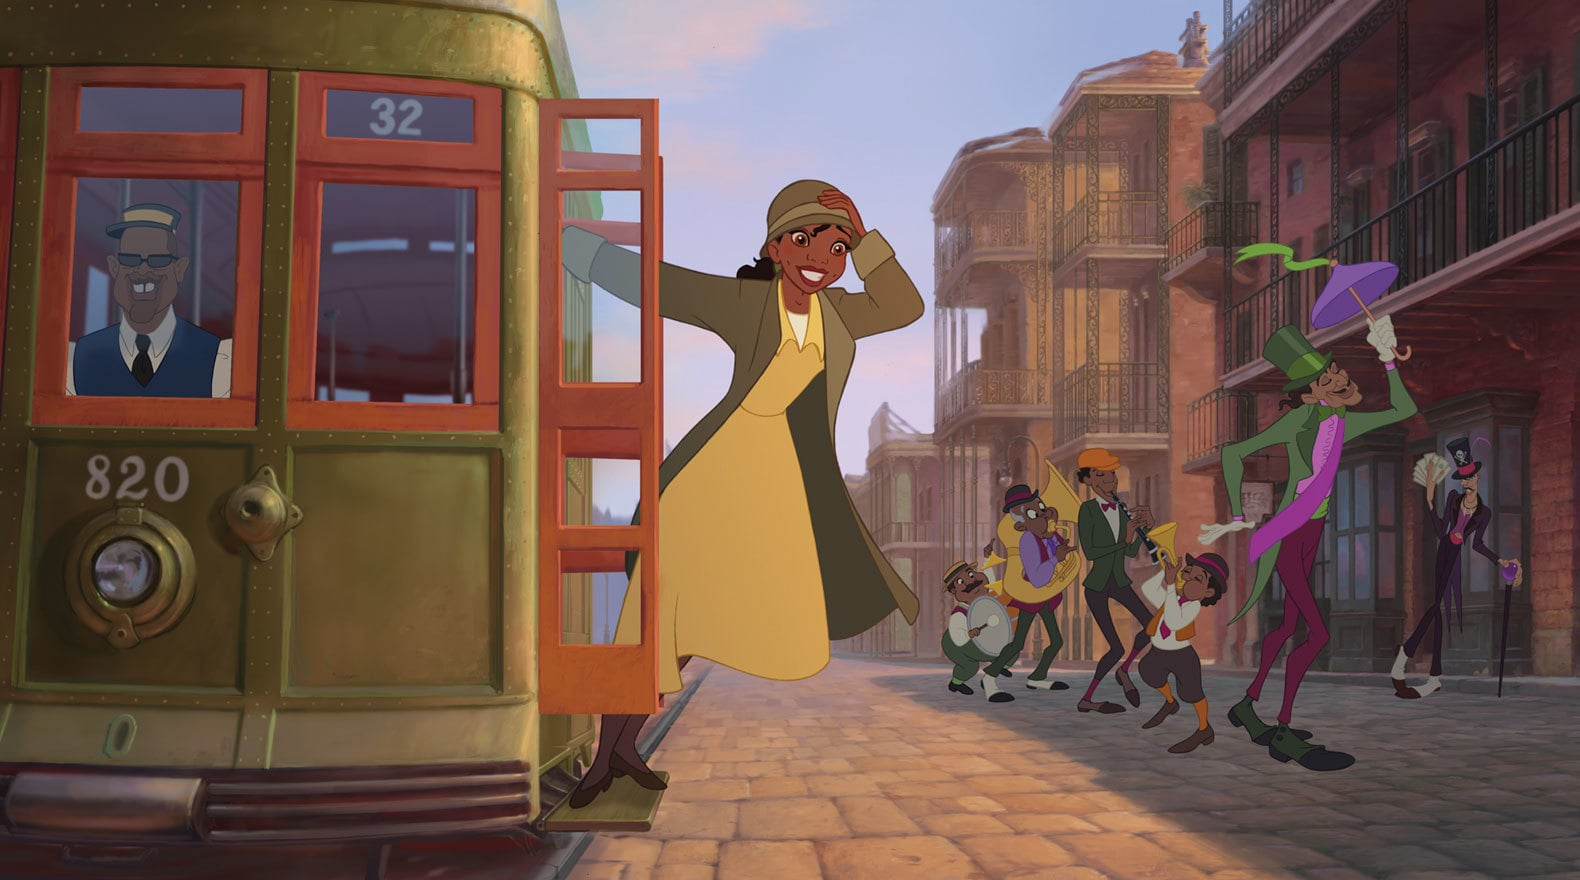 Tiana riding on the side of a trolley